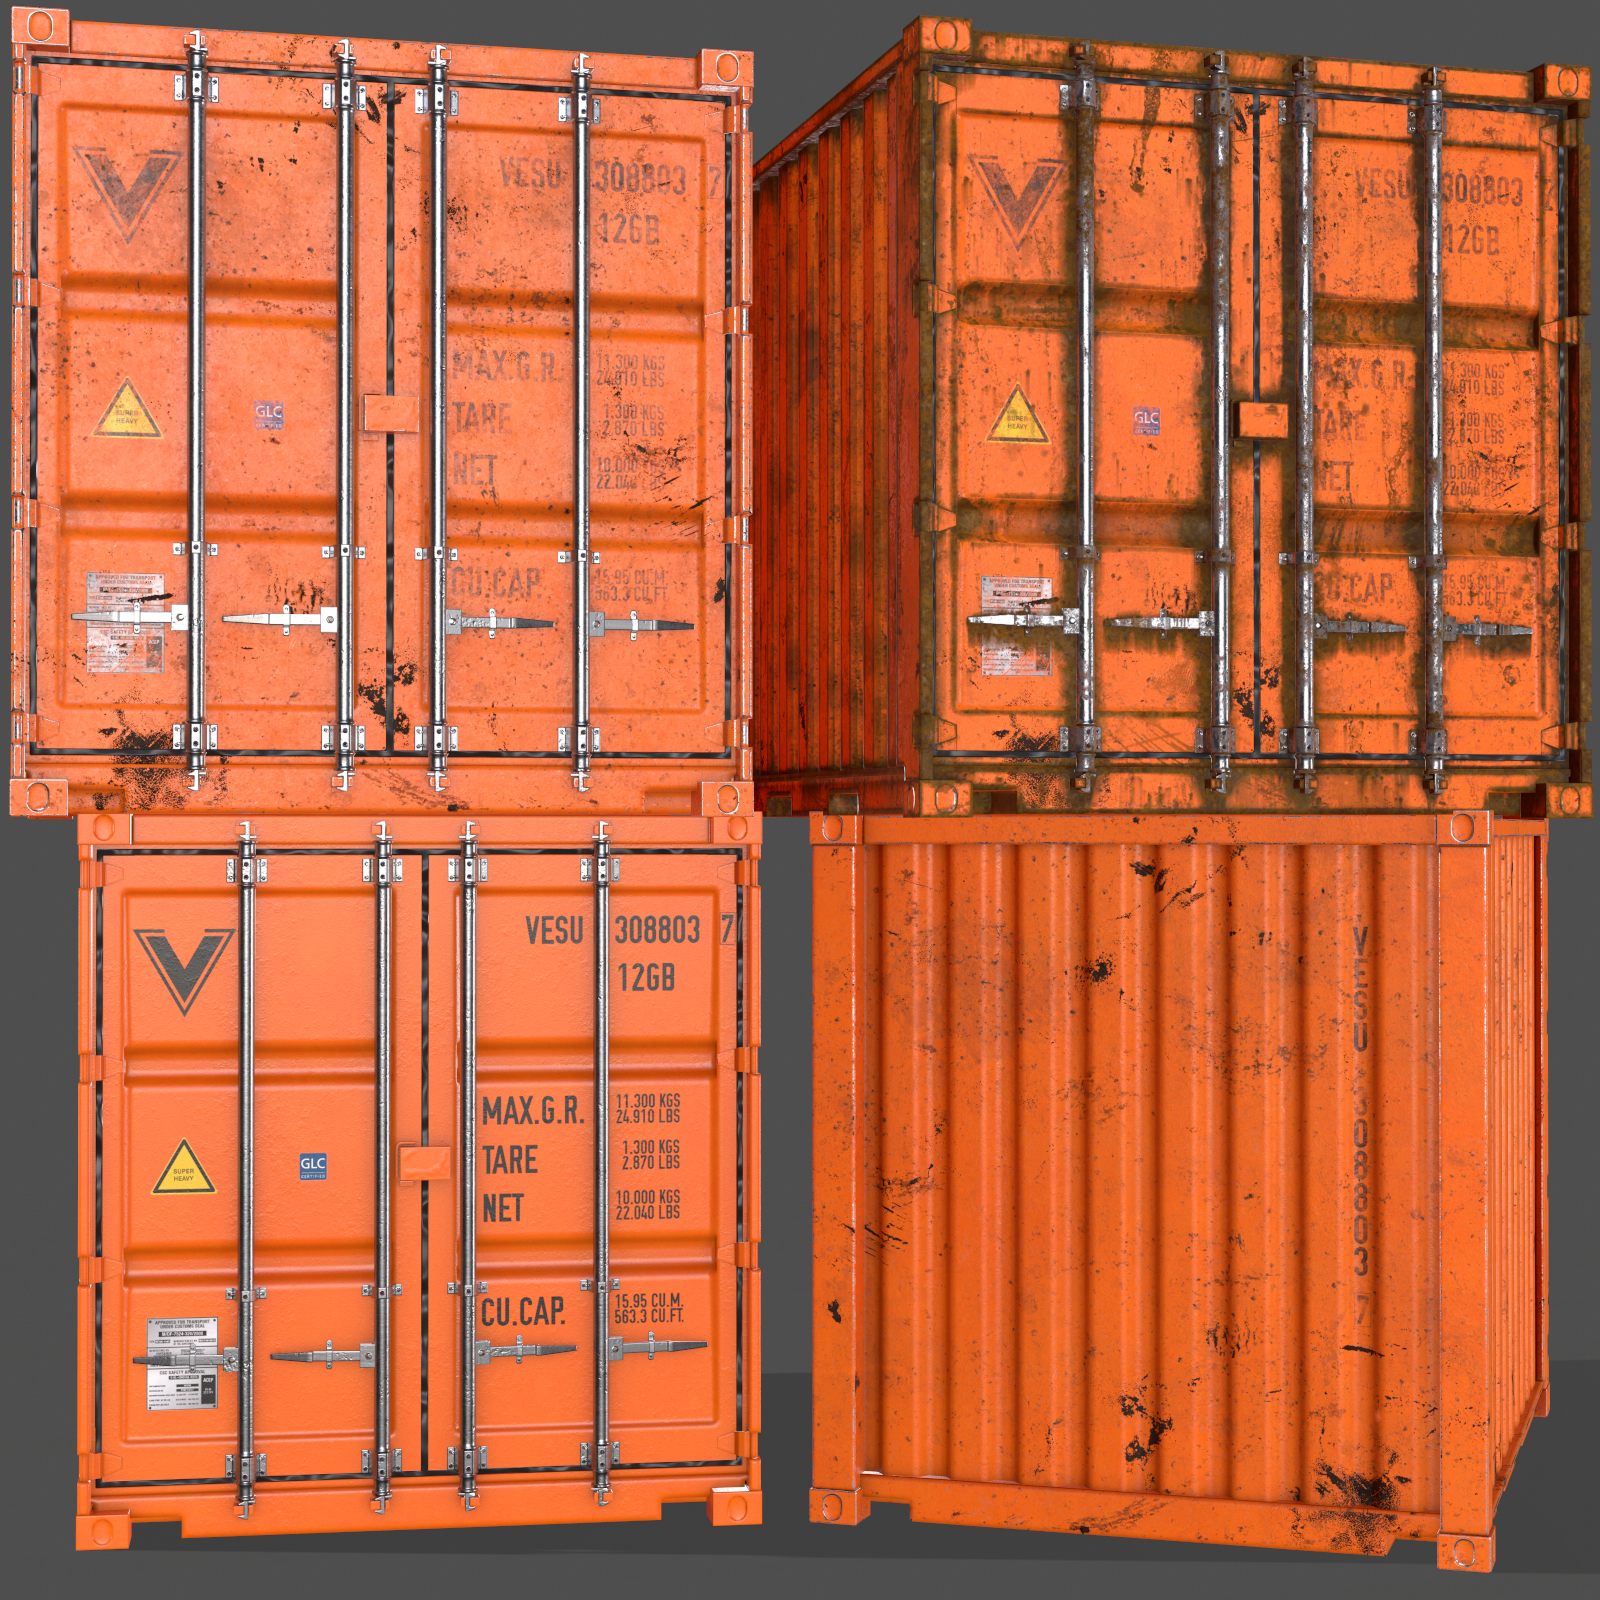 Pbr 10 Ft Storage Container Orange 3d Model In 2020 Low Poly 3d Models Storage Containers Pbr